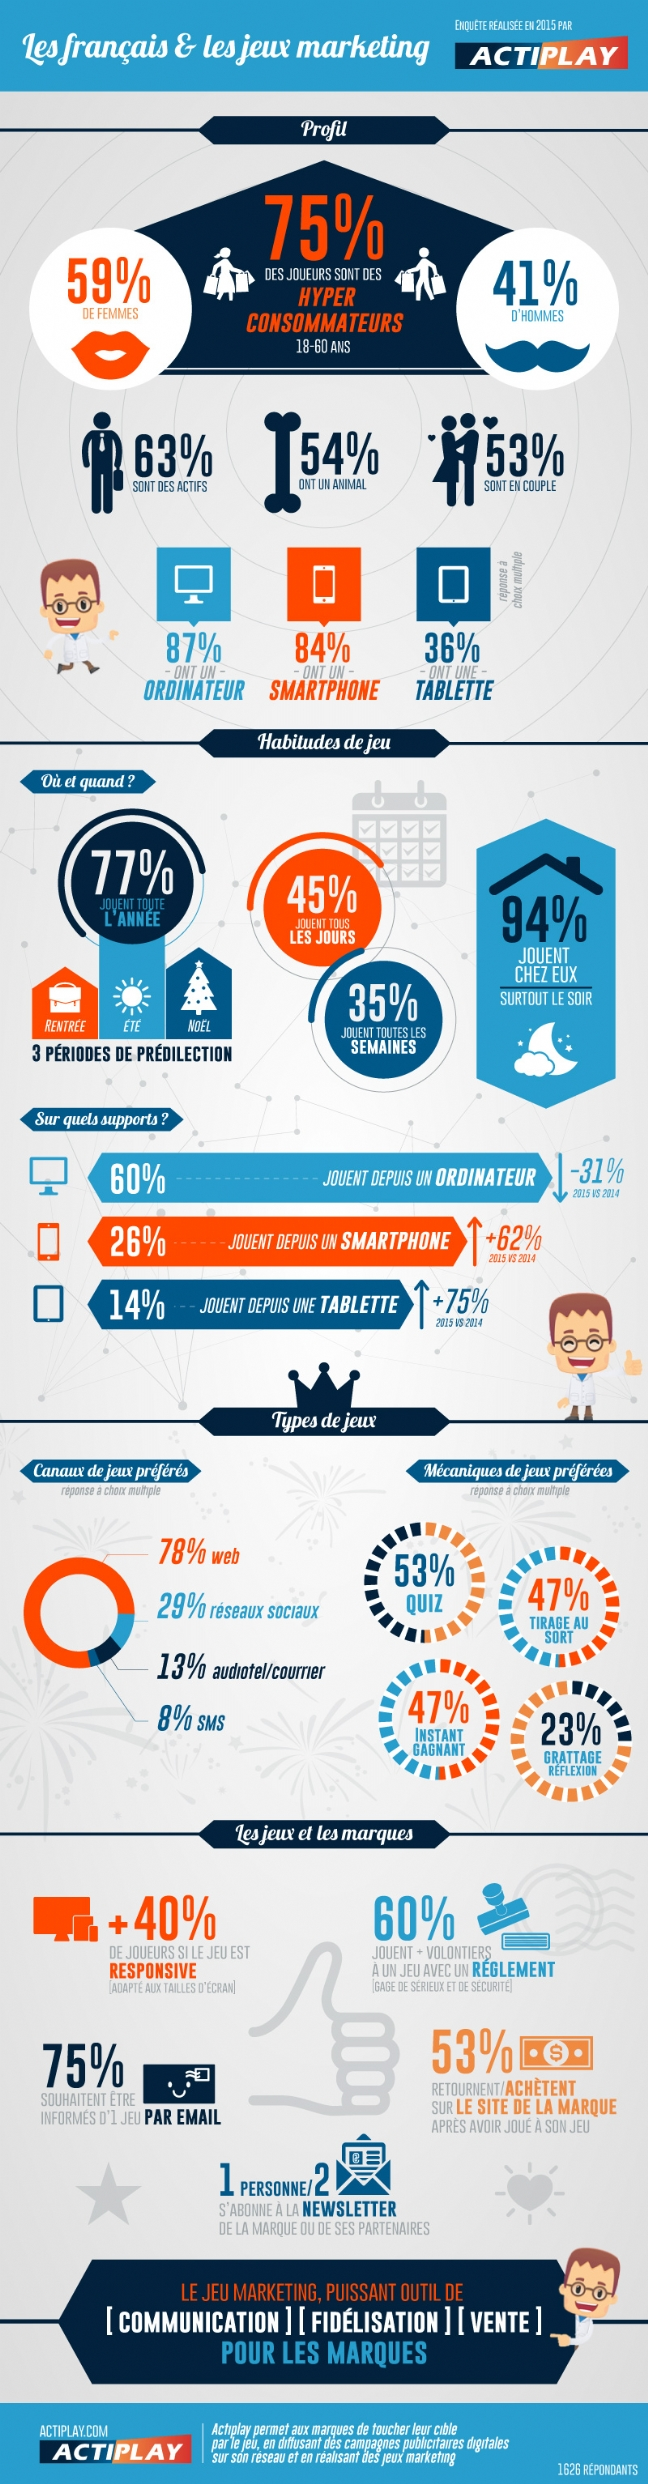 infographie - My Reputation Agency